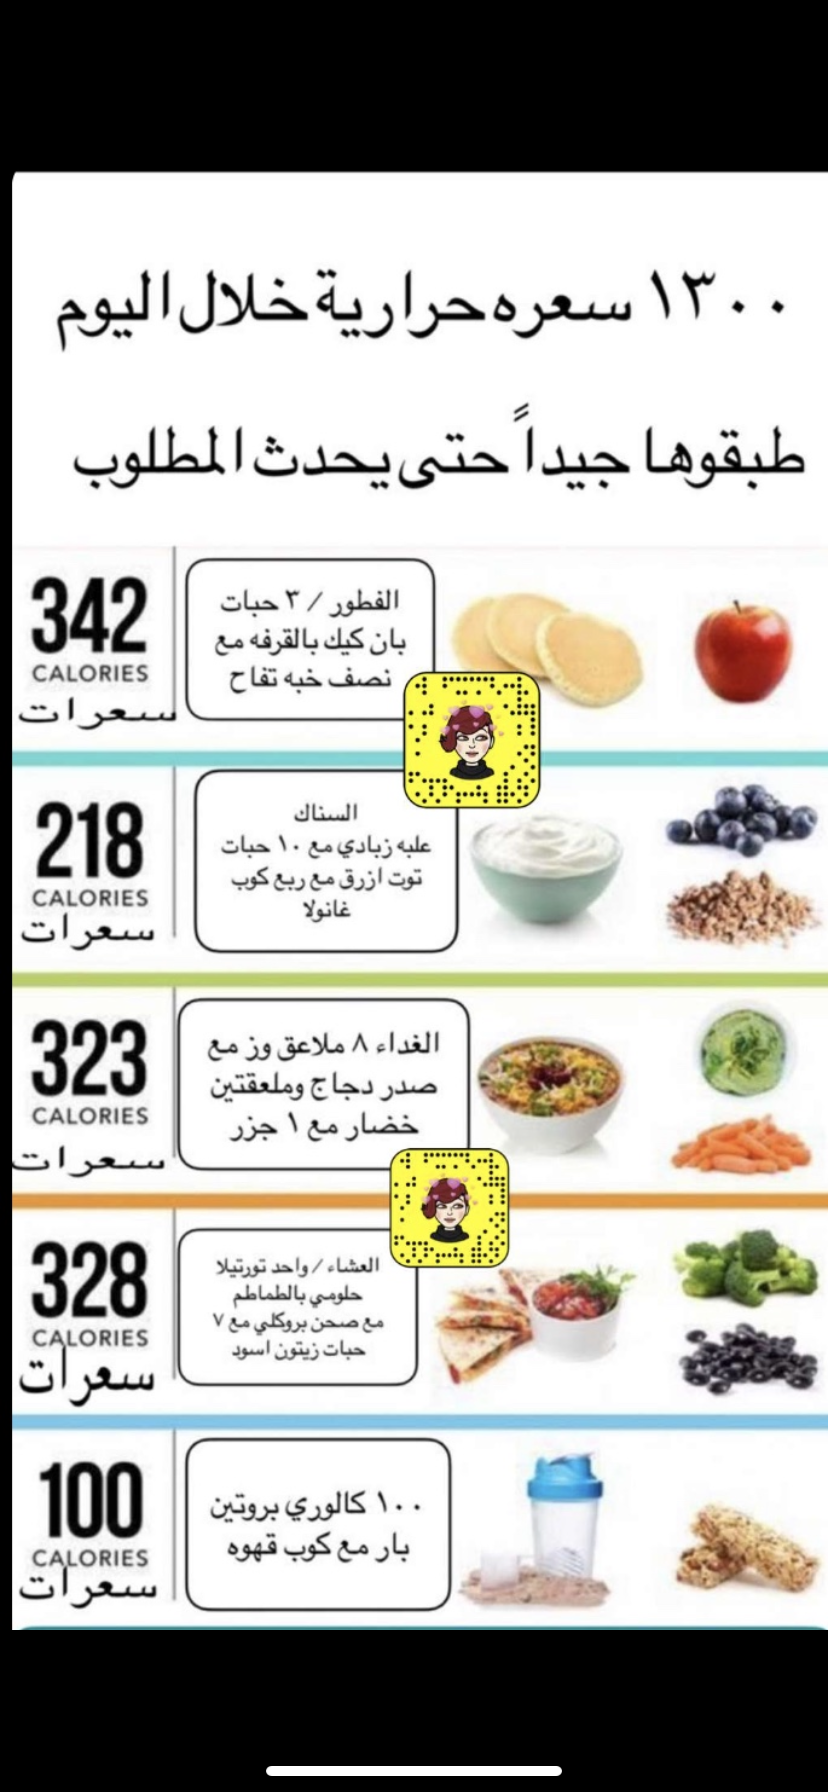 Pin By Rosana Shehadeh On انظمة غذائية لنقصان الوزن Diet Menu Planner Health Facts Fitness Healty Food